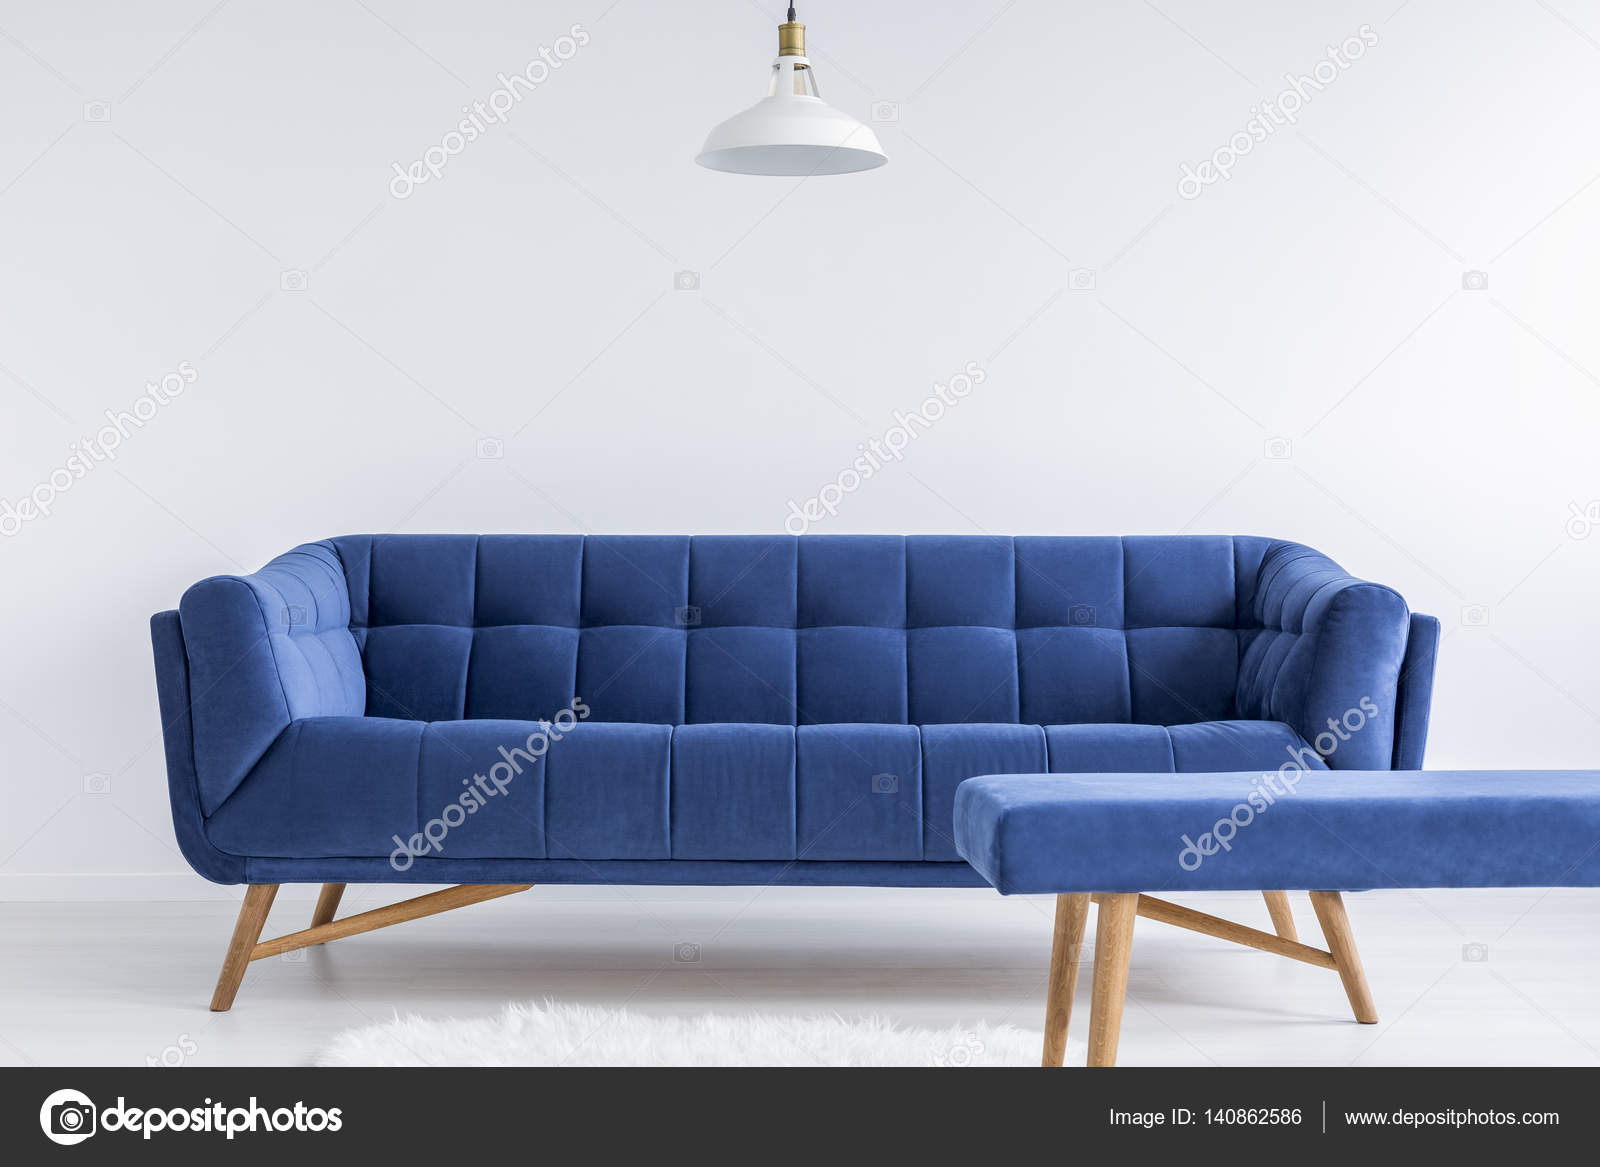 Room with vintage sofa Stock Photo photographeeeu 140862586